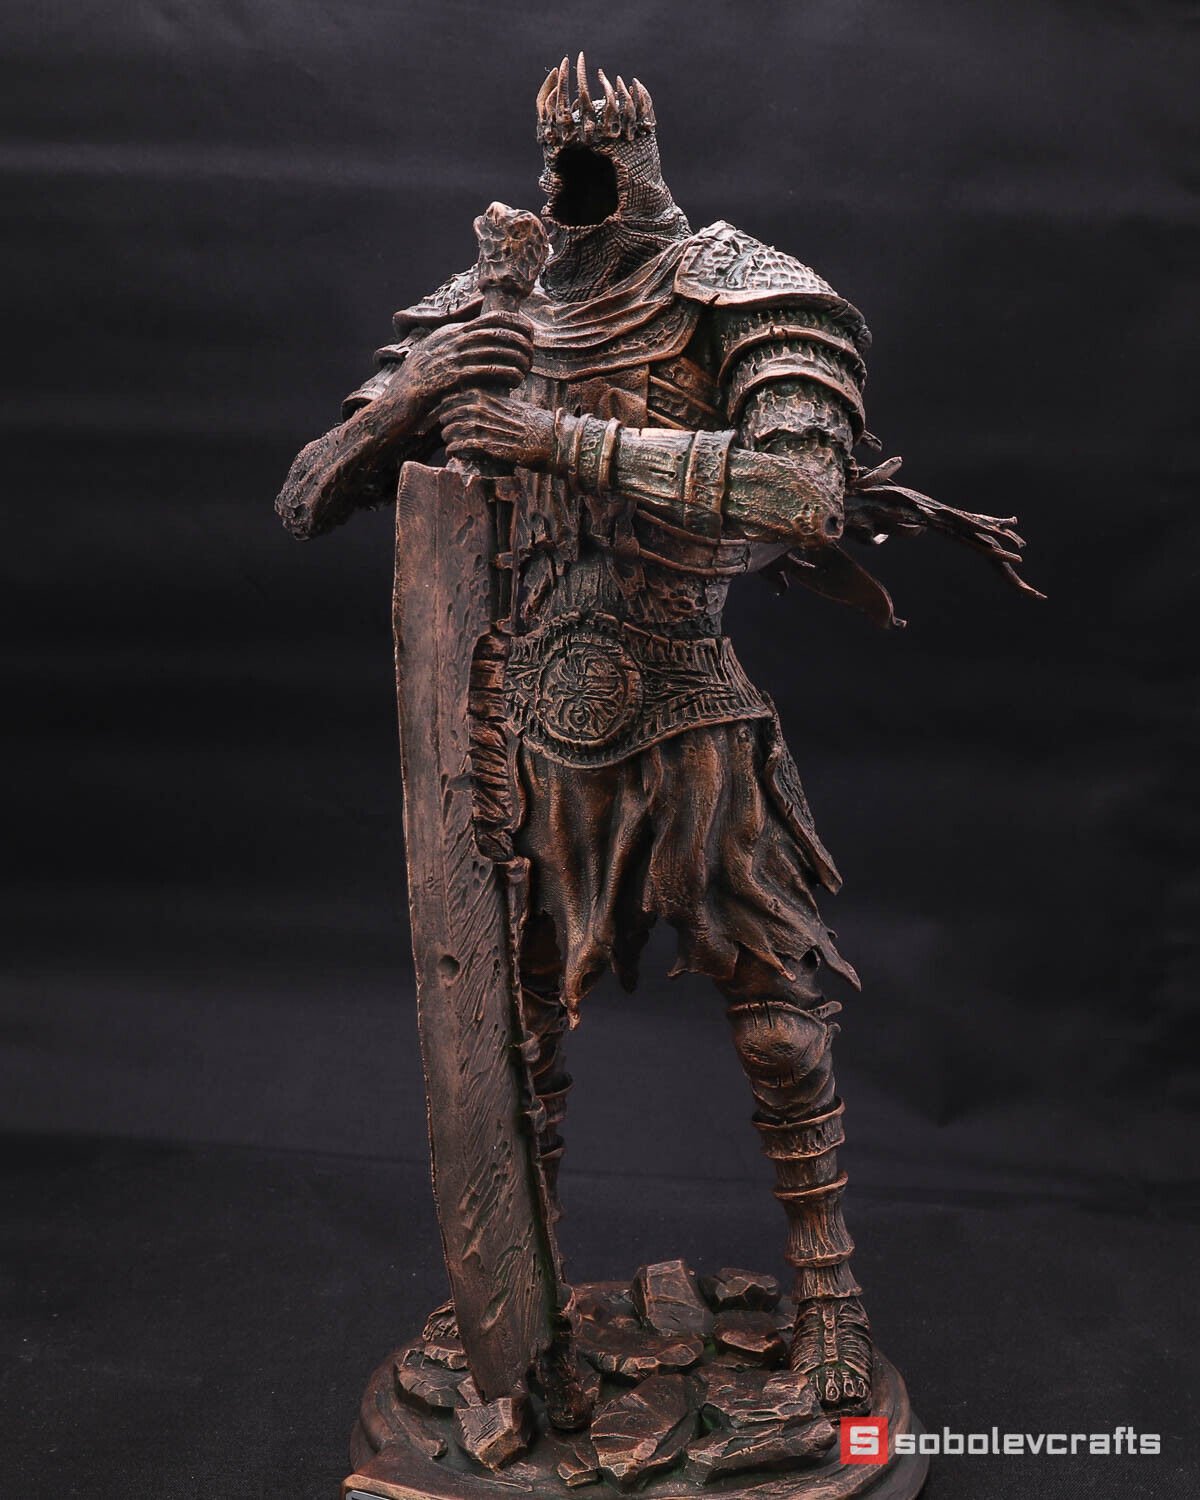 Yhorm the Giant - Lord of Cinder. Dark Souls 3. Bronze Farbe Handmade. game gift